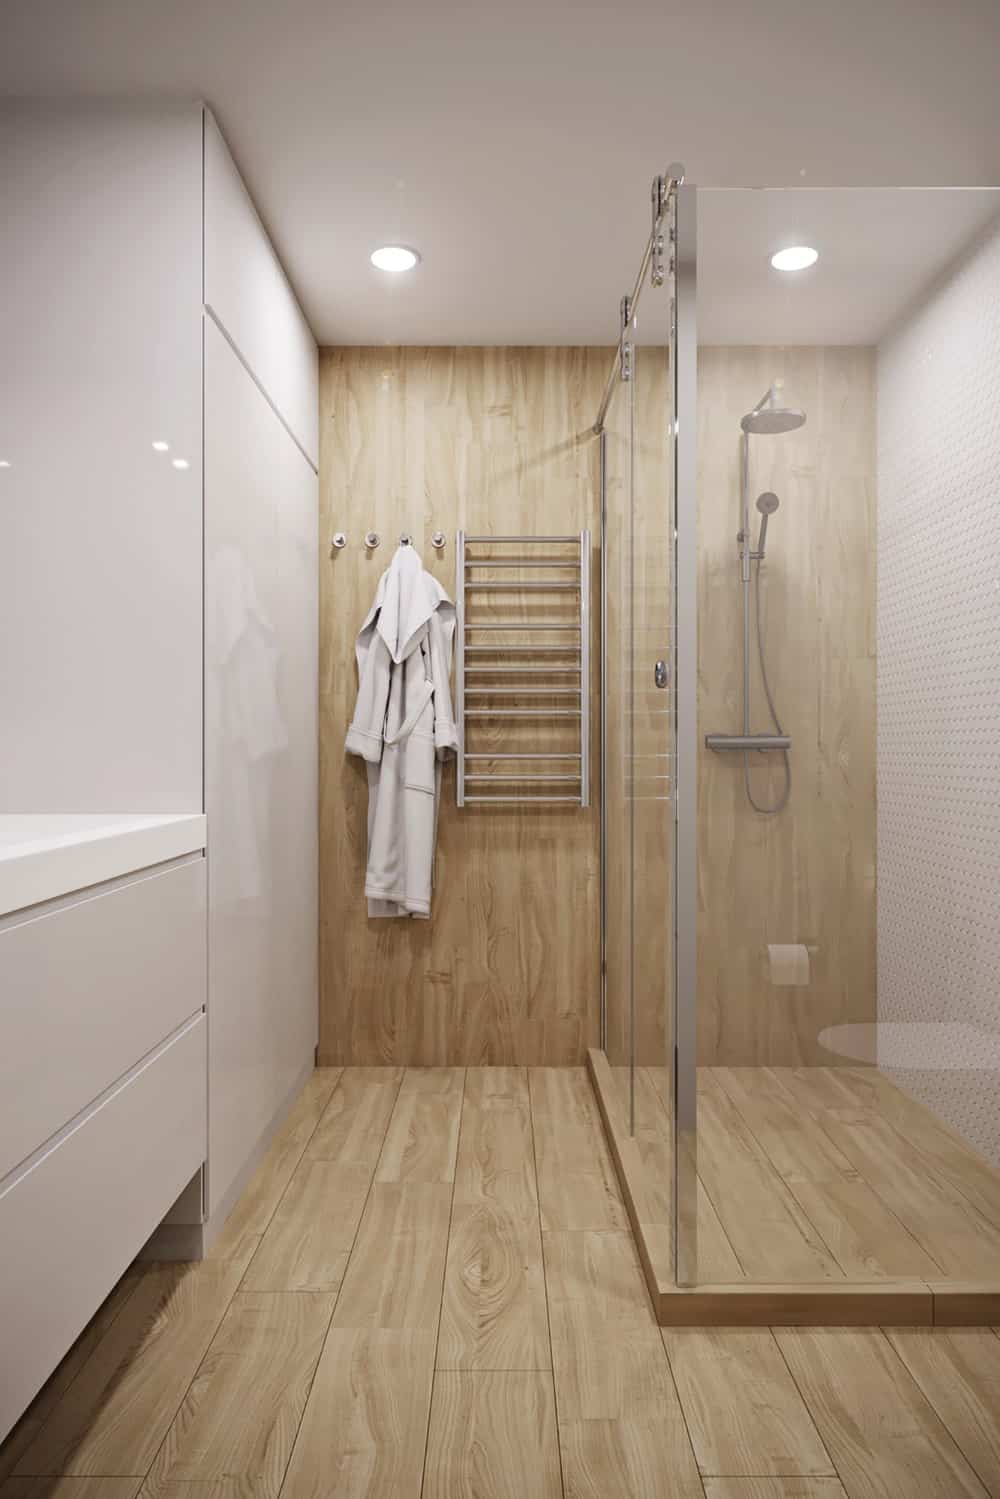 This is the bathroom that has a modern bright beige floating vanity and a glass-enclosed shower area.